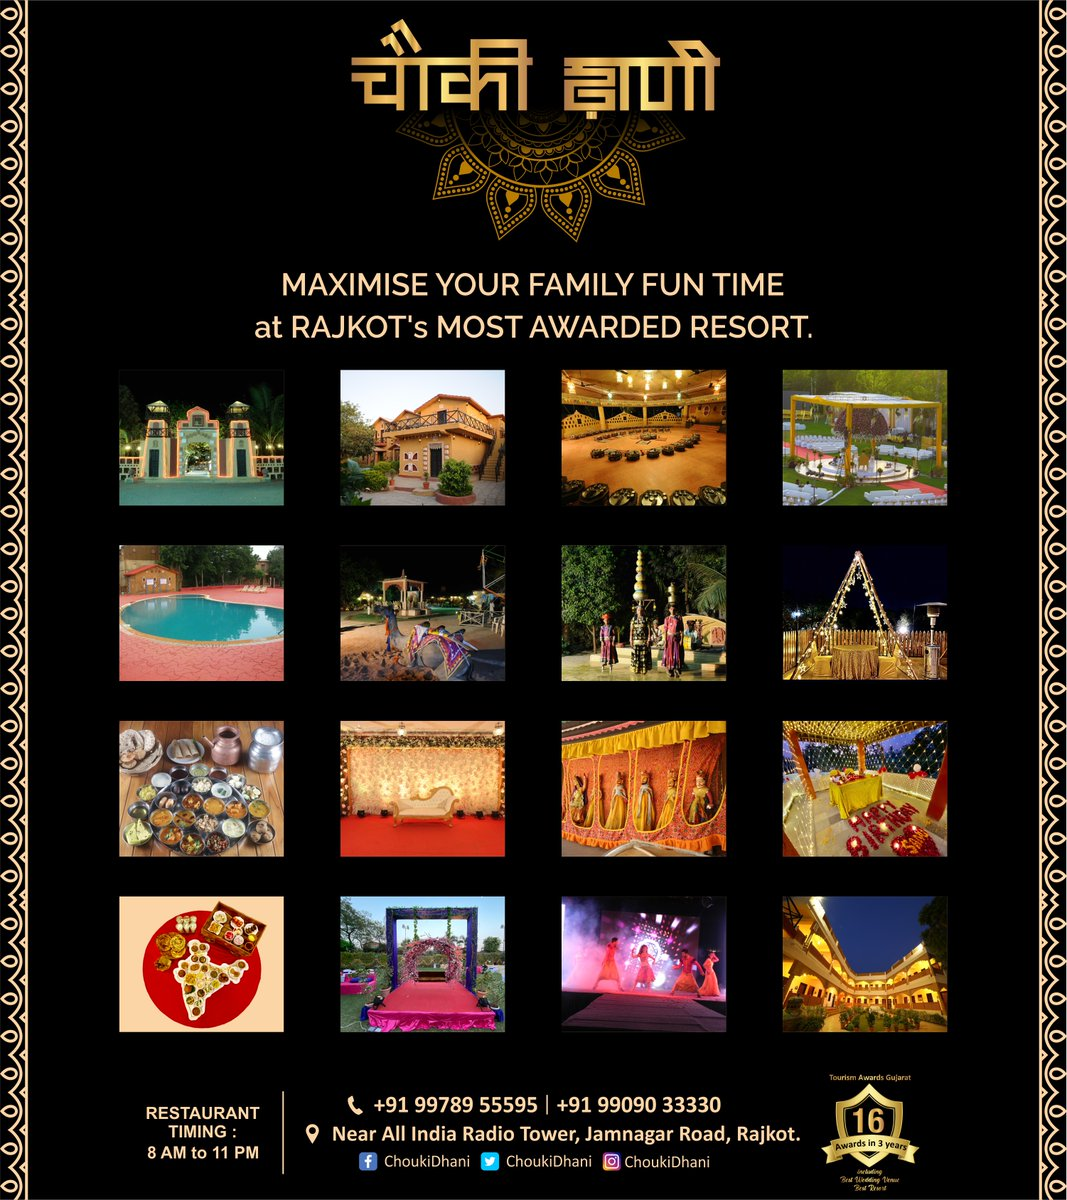 MAXIMIZE YOUR FAMILY FUN TIME at RAJKOT's MOST LOVED RESORT. 16 awards in 3 years Best Wedding Venue Award from Tourism Awards Gujarat  Call on: 9978955595  #Choukdhani #wellappointed #modernamminities #memorable #16Awards #PopularResort #Food #Stay #Party #Surprise #Function